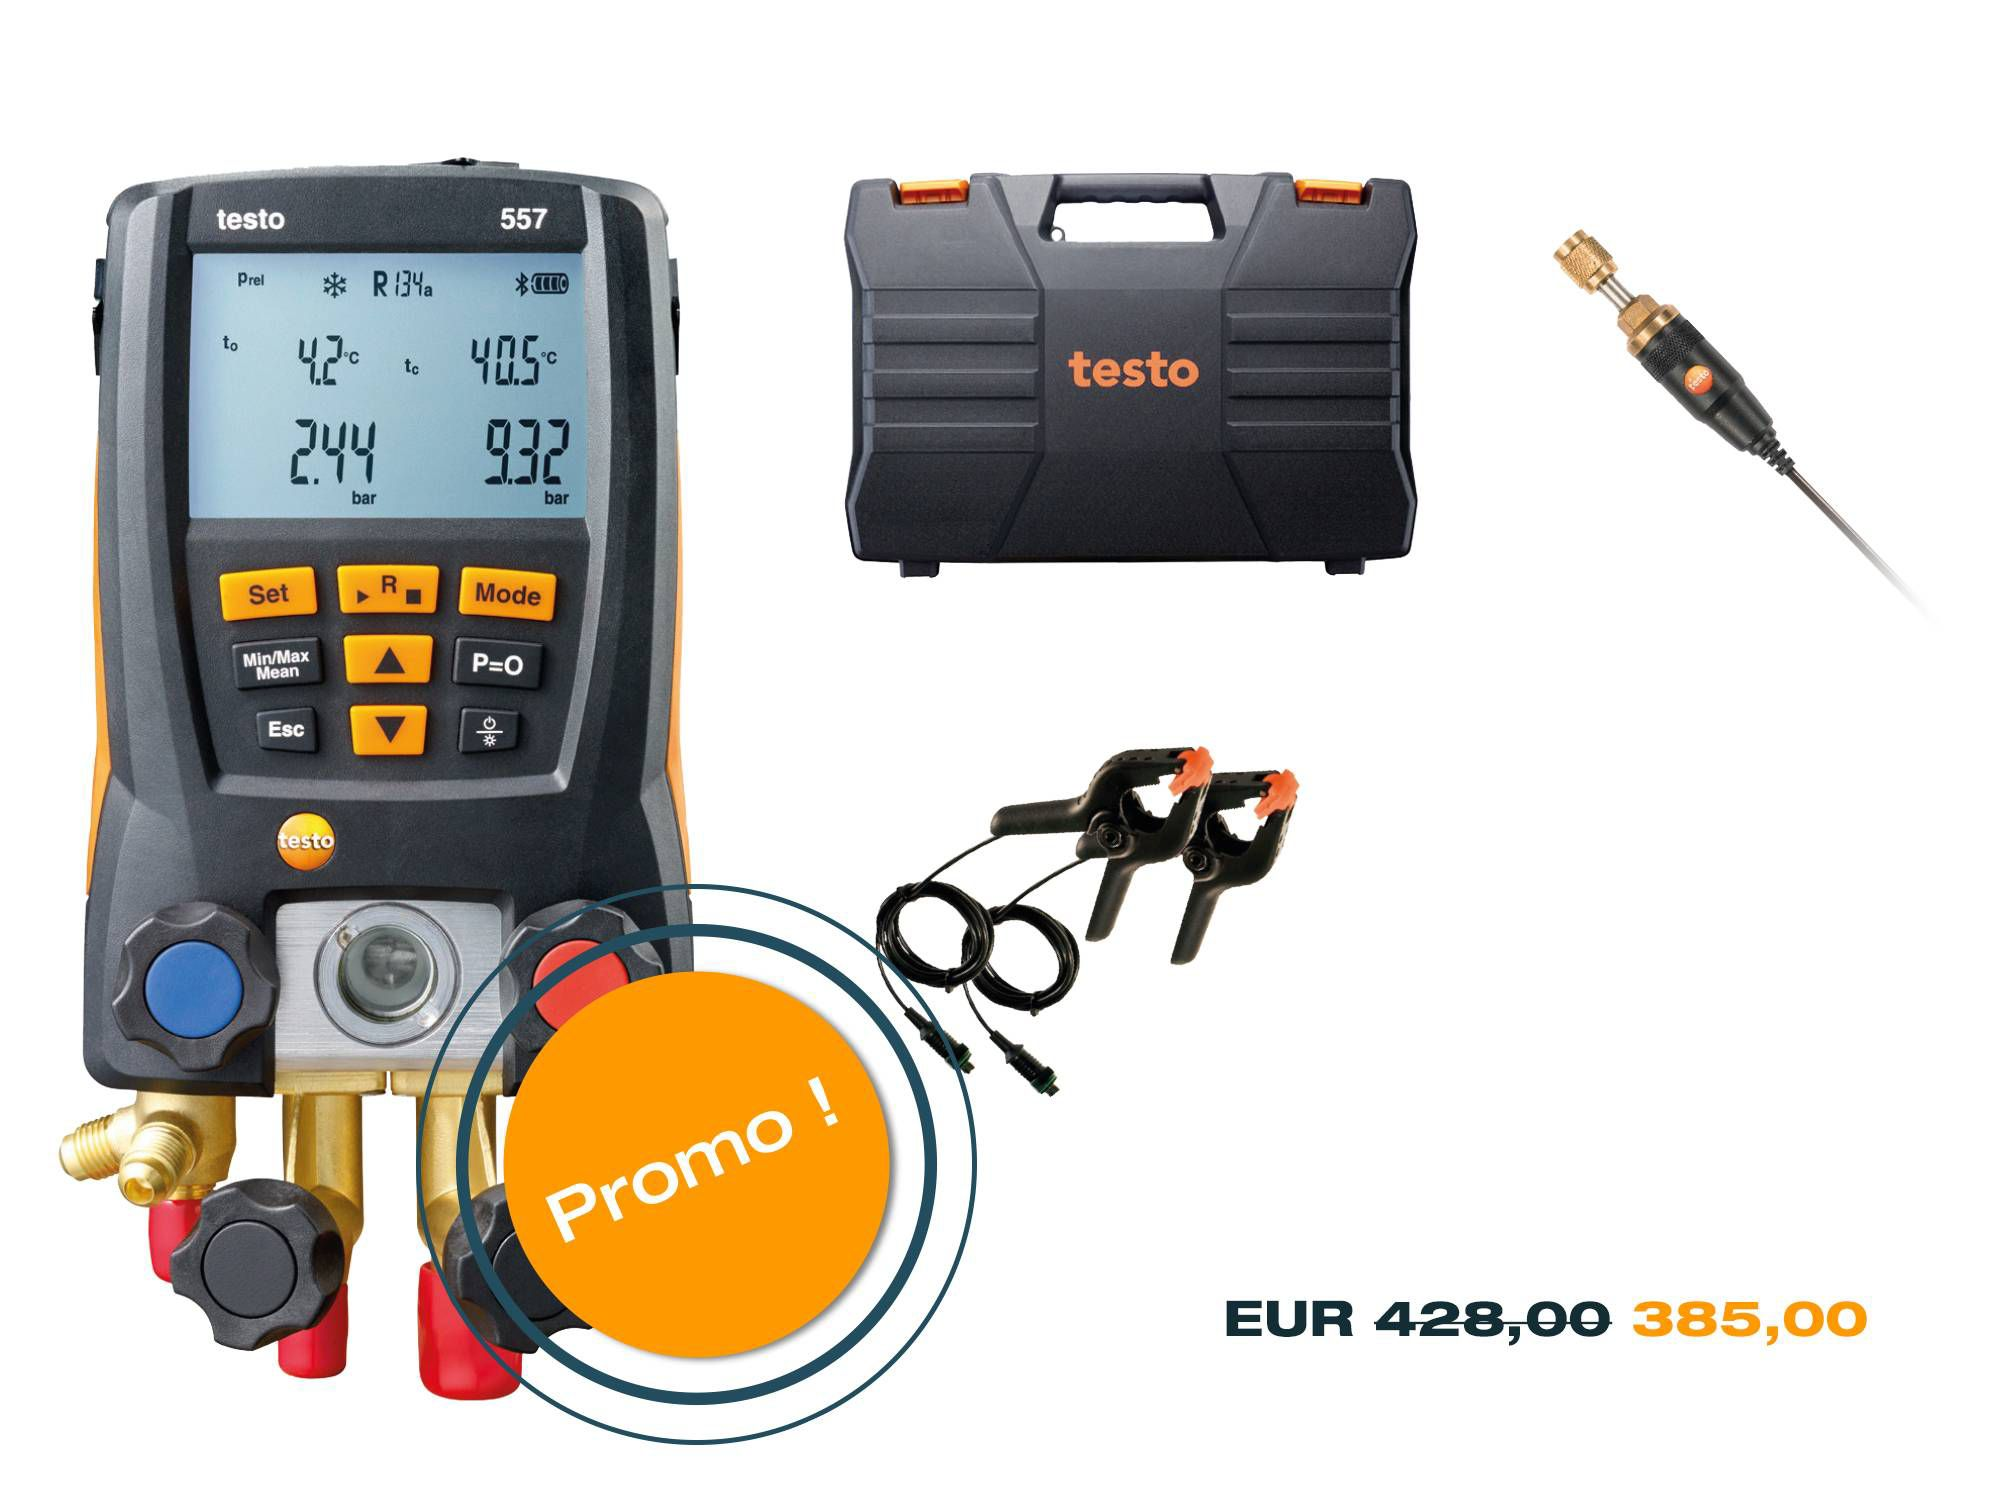 heating-2020-testo-557-set-1-promo-FR.jpg